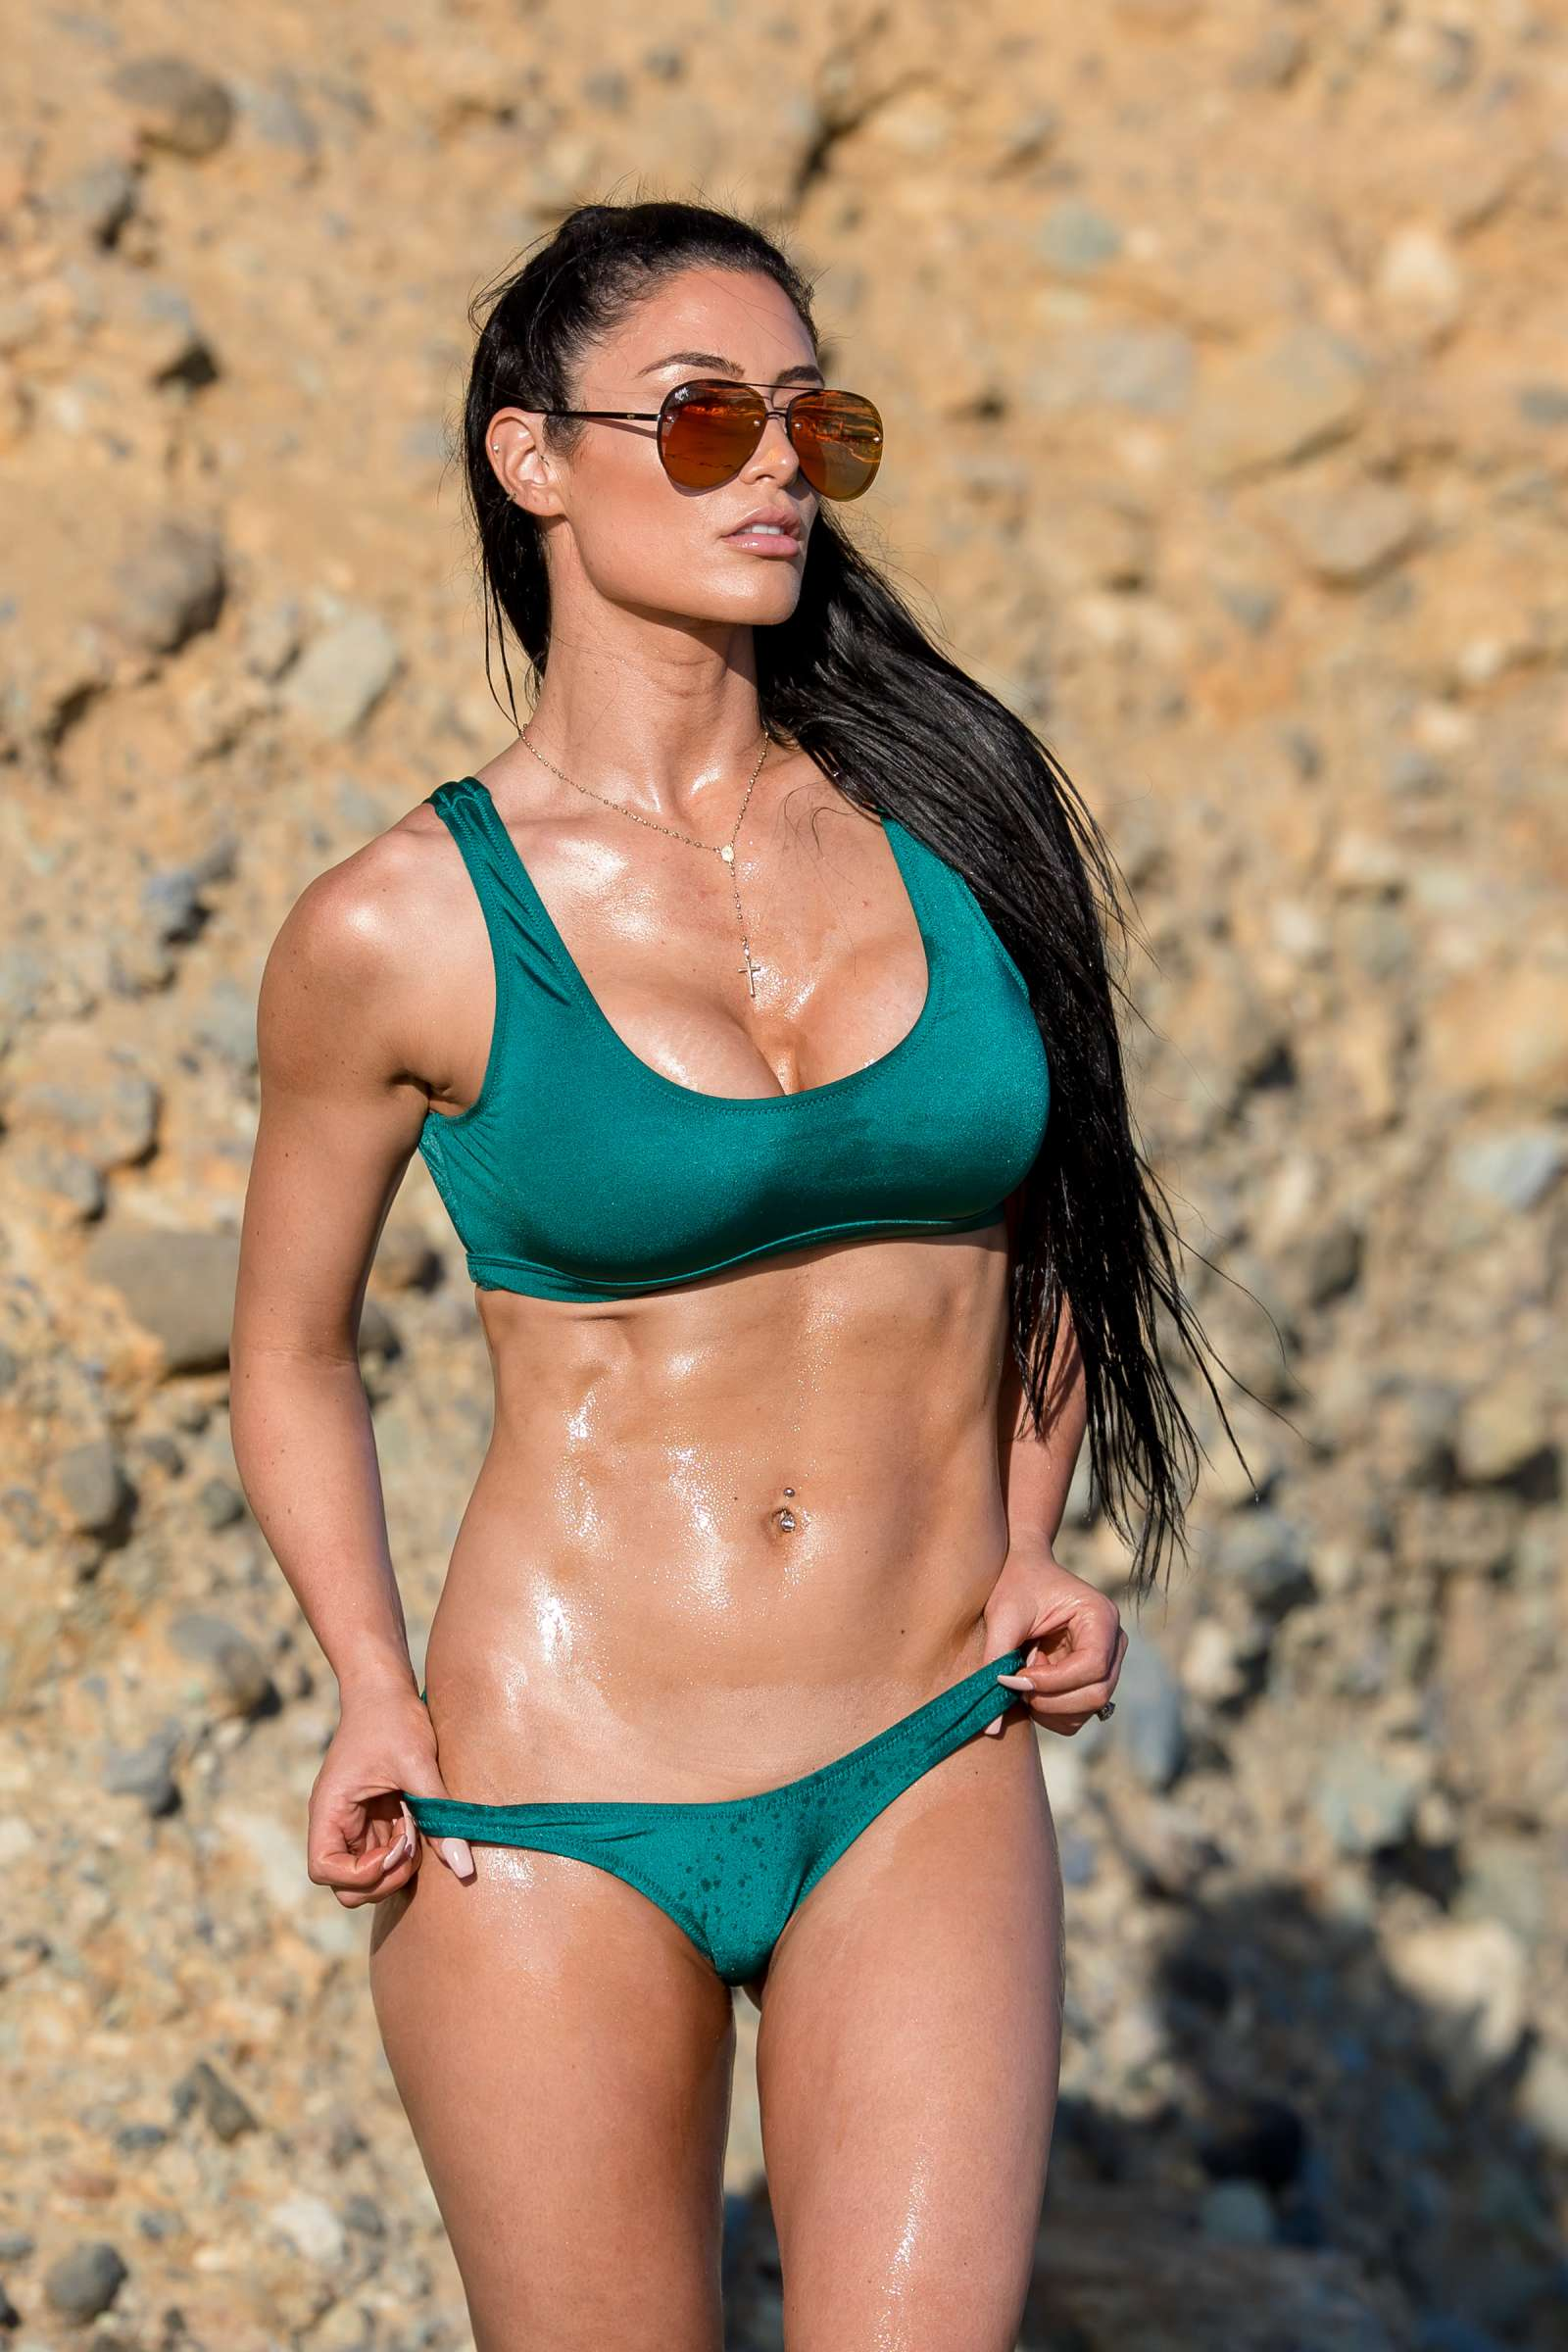 Images Natalie Eva Marie nudes (91 foto and video), Sexy, Cleavage, Boobs, cameltoe 2017